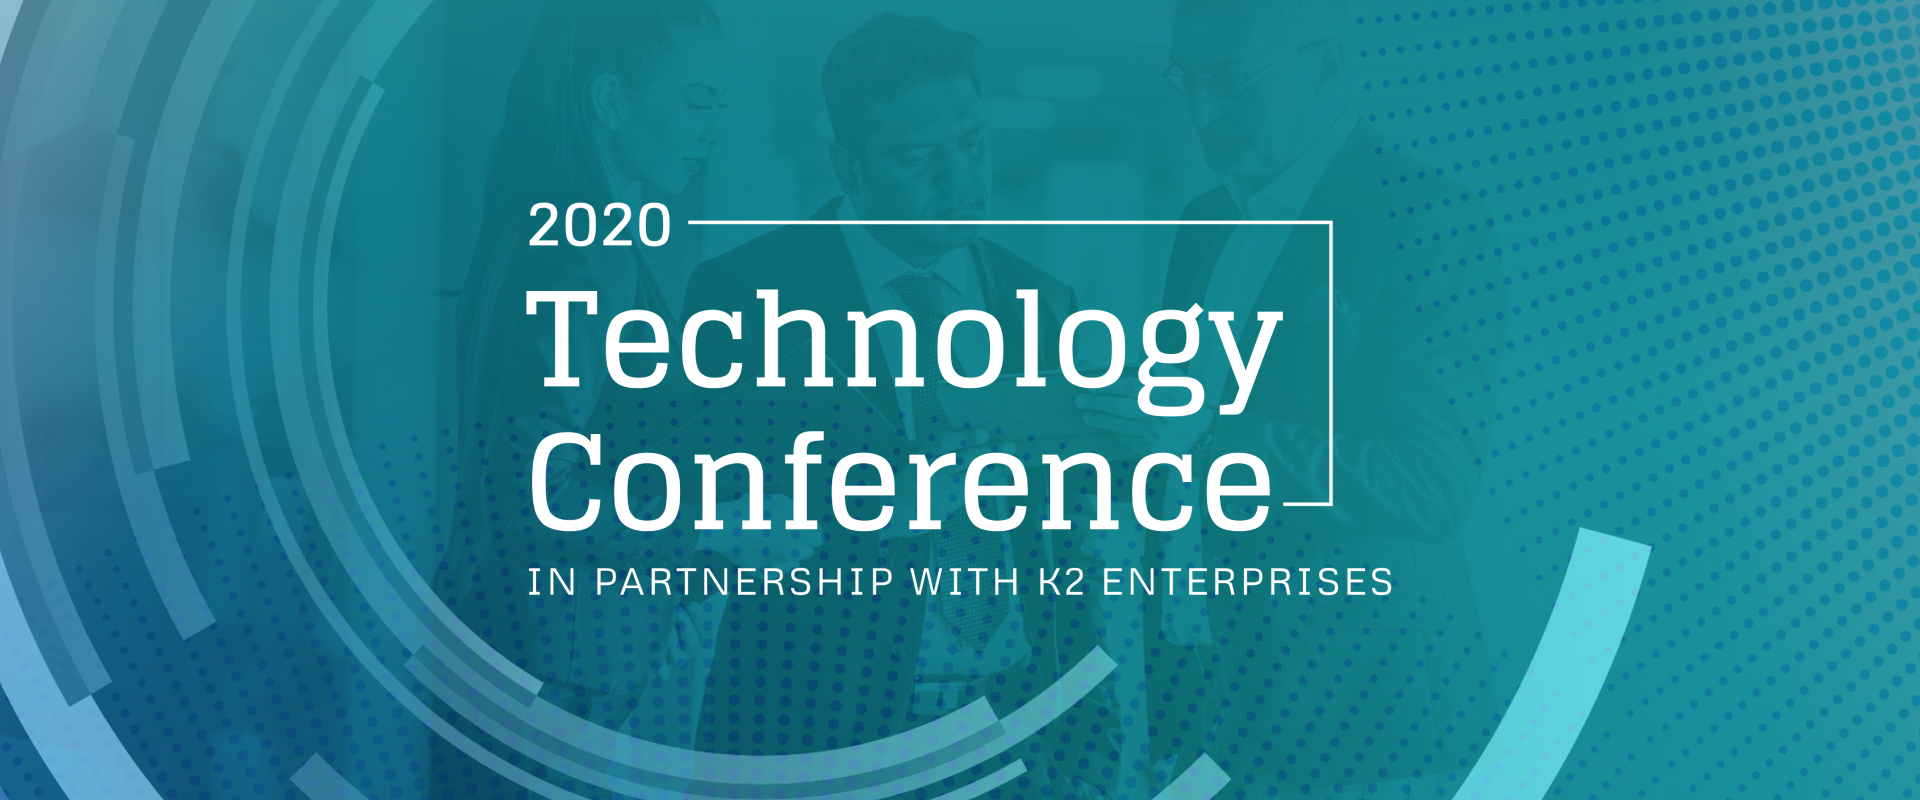 2020 Technology Conference – Day 1